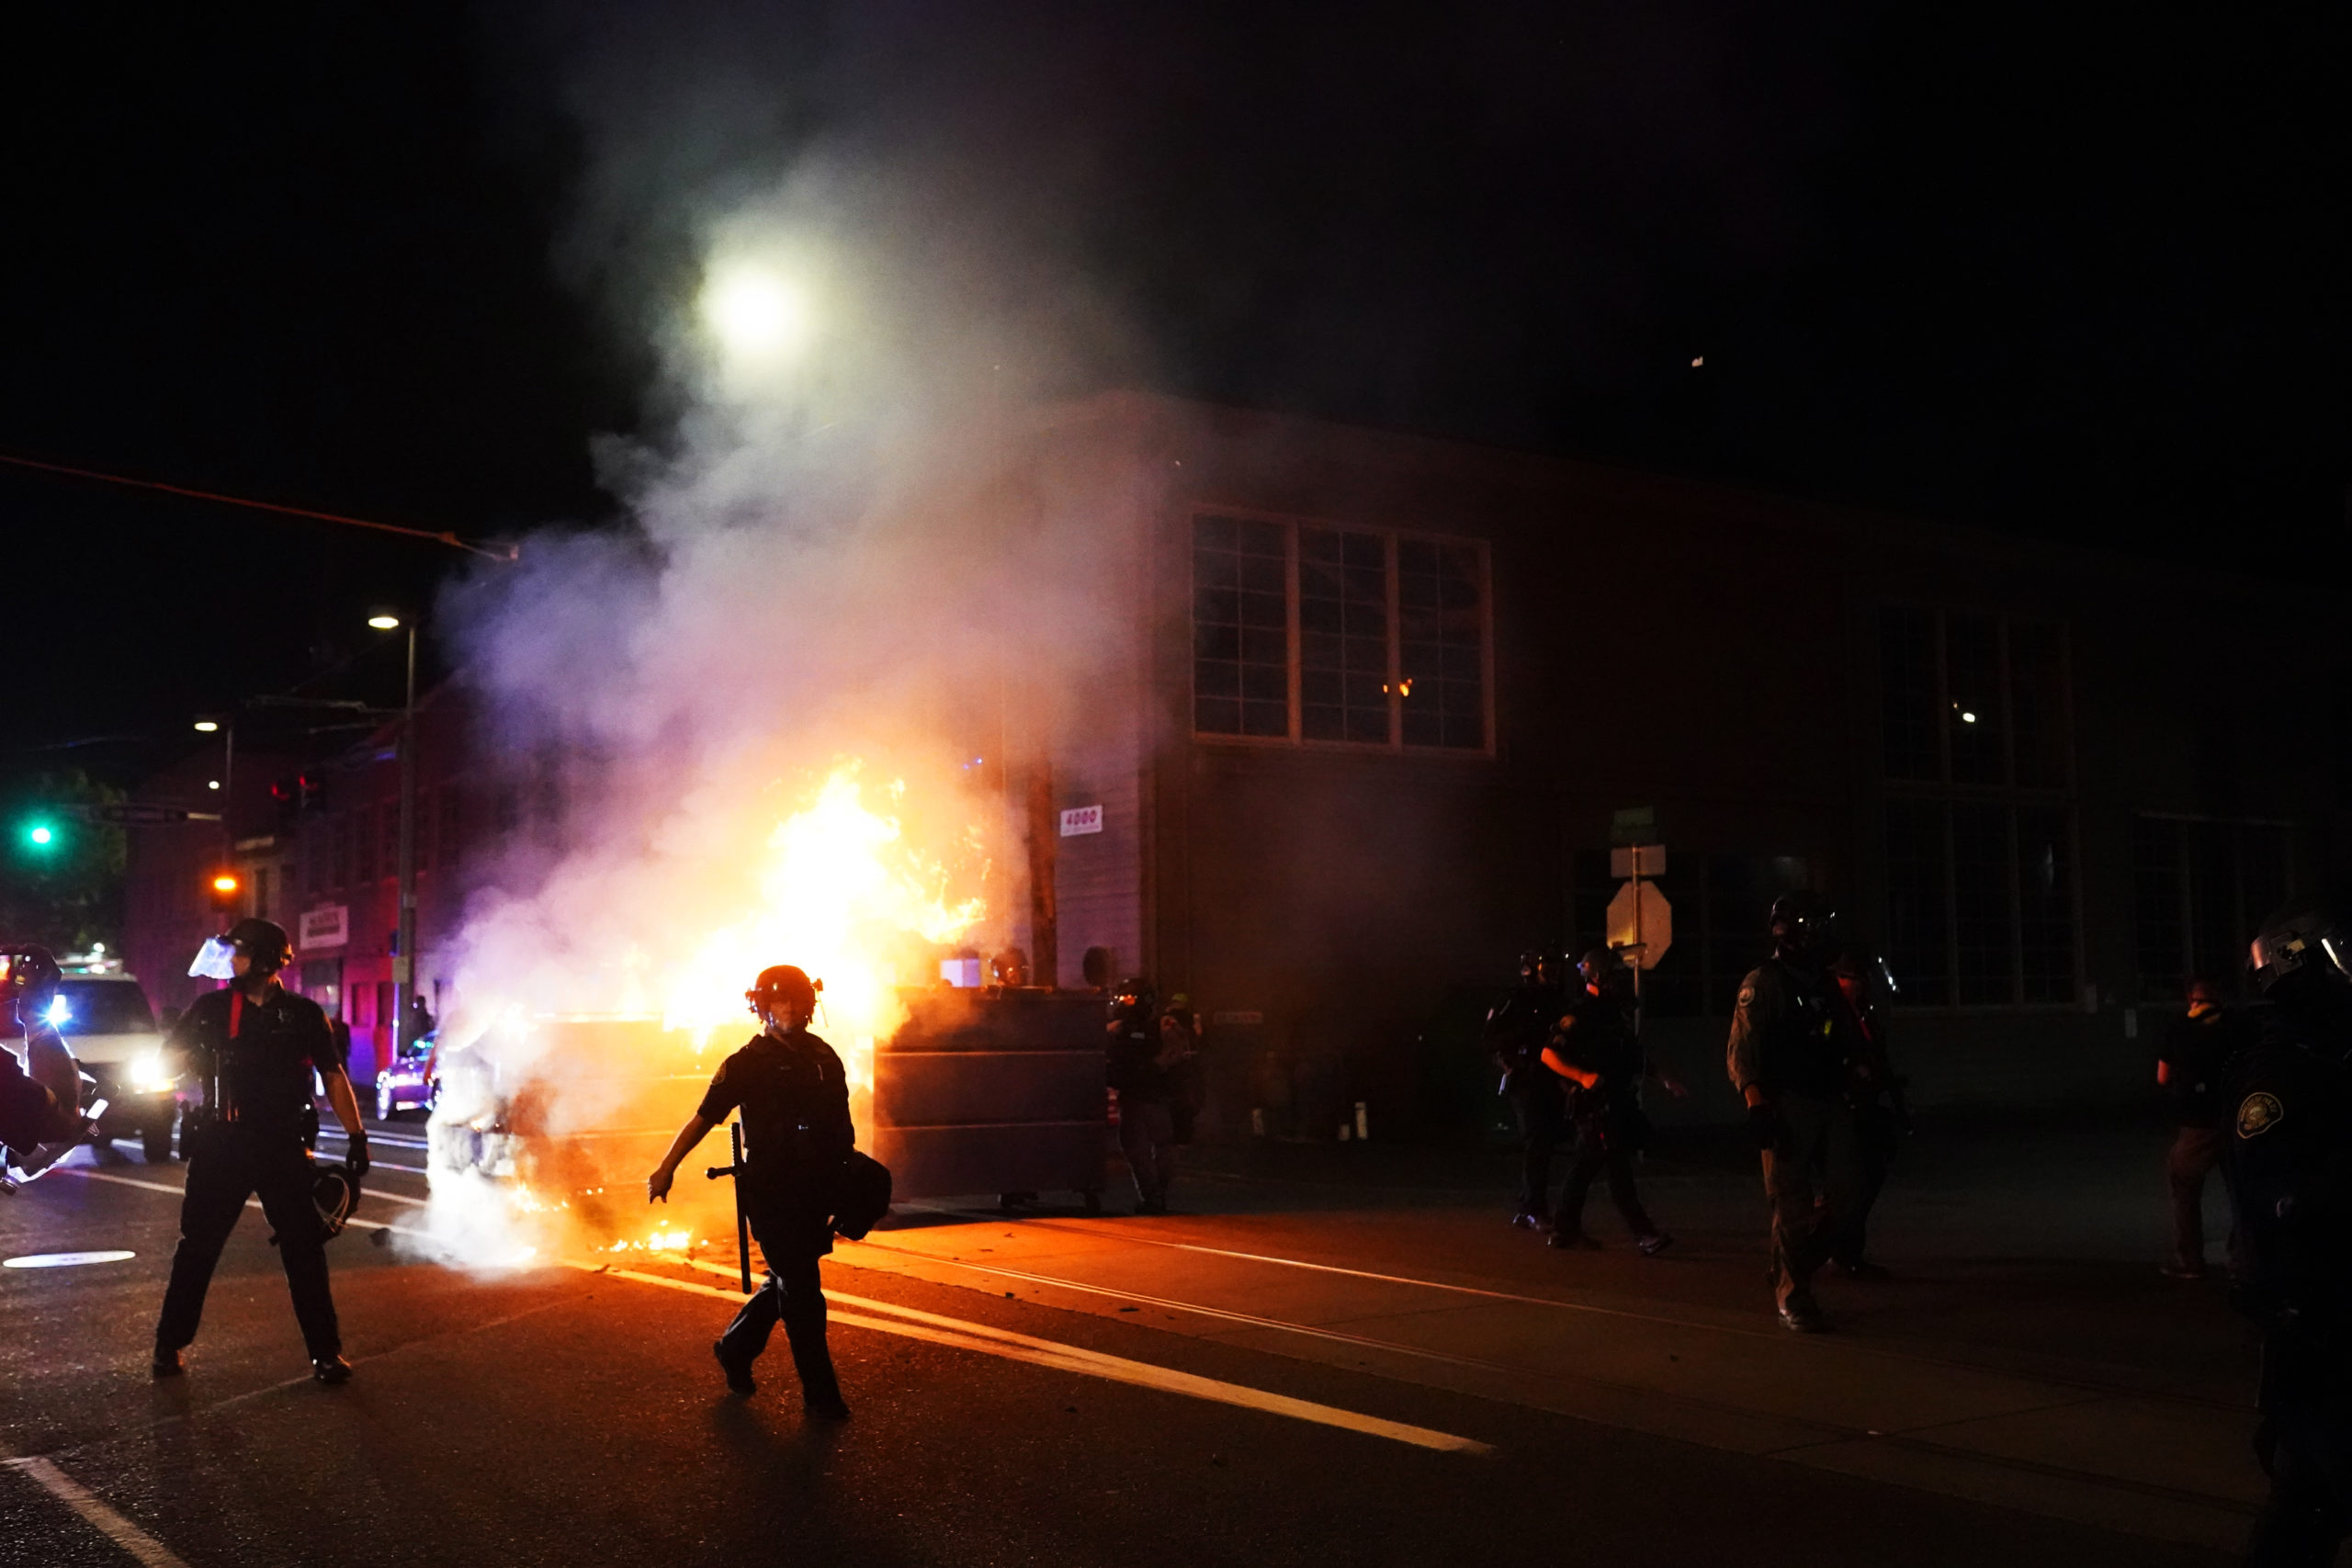 PORTLAND, OR - AUGUST 21: Portland police officers push protesters past a dumpster fire during a dispersal from in front of the Immigration and Customs Enforcement (ICE) detention facility early in the morning on August 21, 2020 in Portland, Oregon. For the second night in a row city police and federal officers clashed with protesters in South Waterfront. (Photo by Nathan Howard/Getty Images)